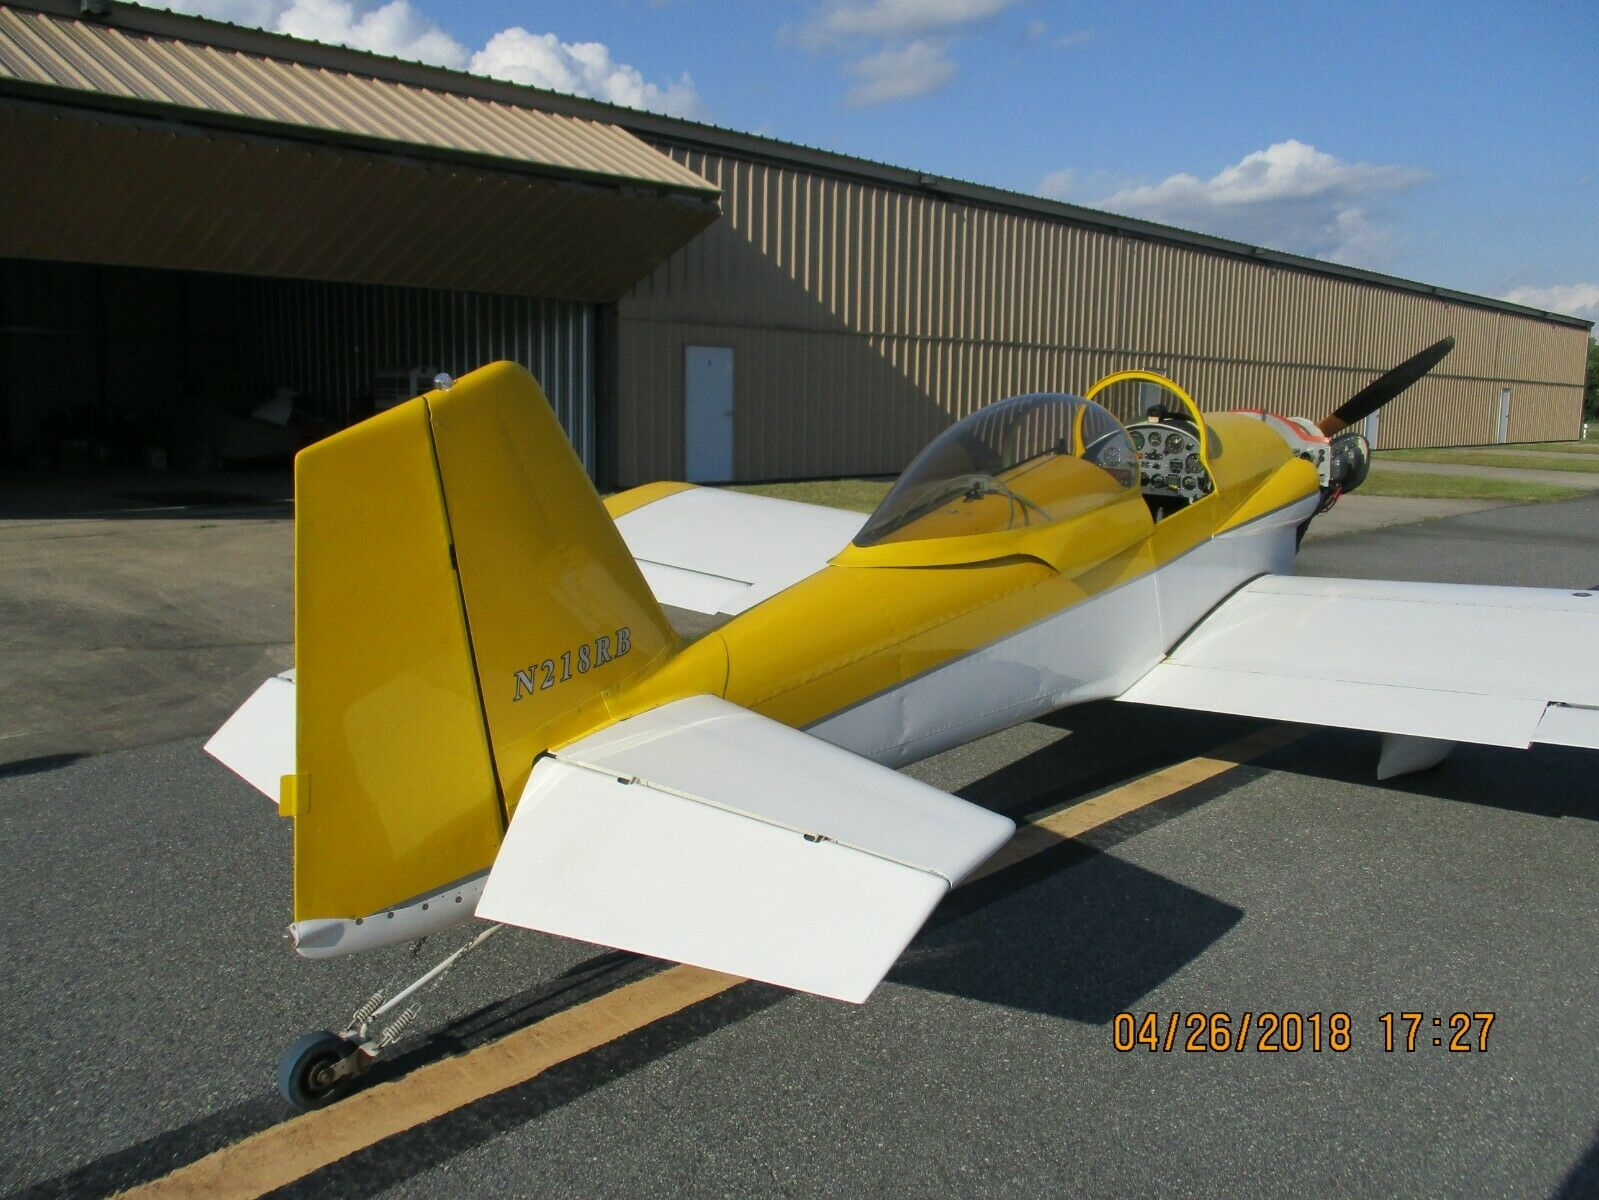 low time 1990 Vans RV 3 Aircraft